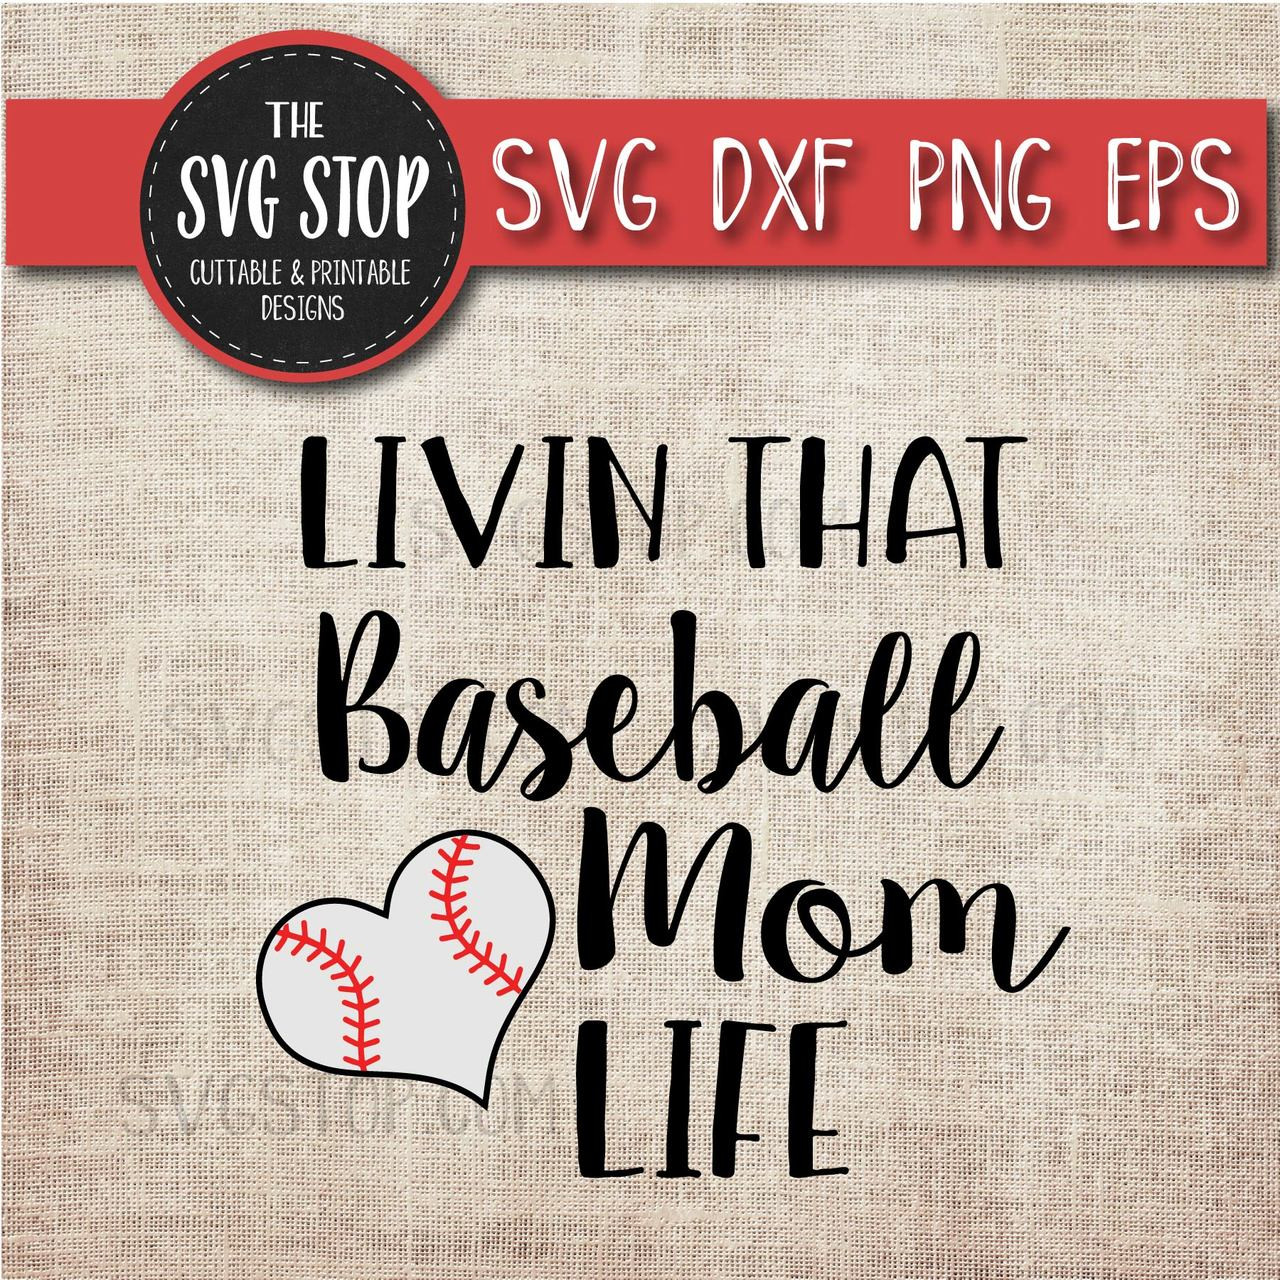 Livin That Baseball Mom Life Svg Cut File Clipart The Svg Stop